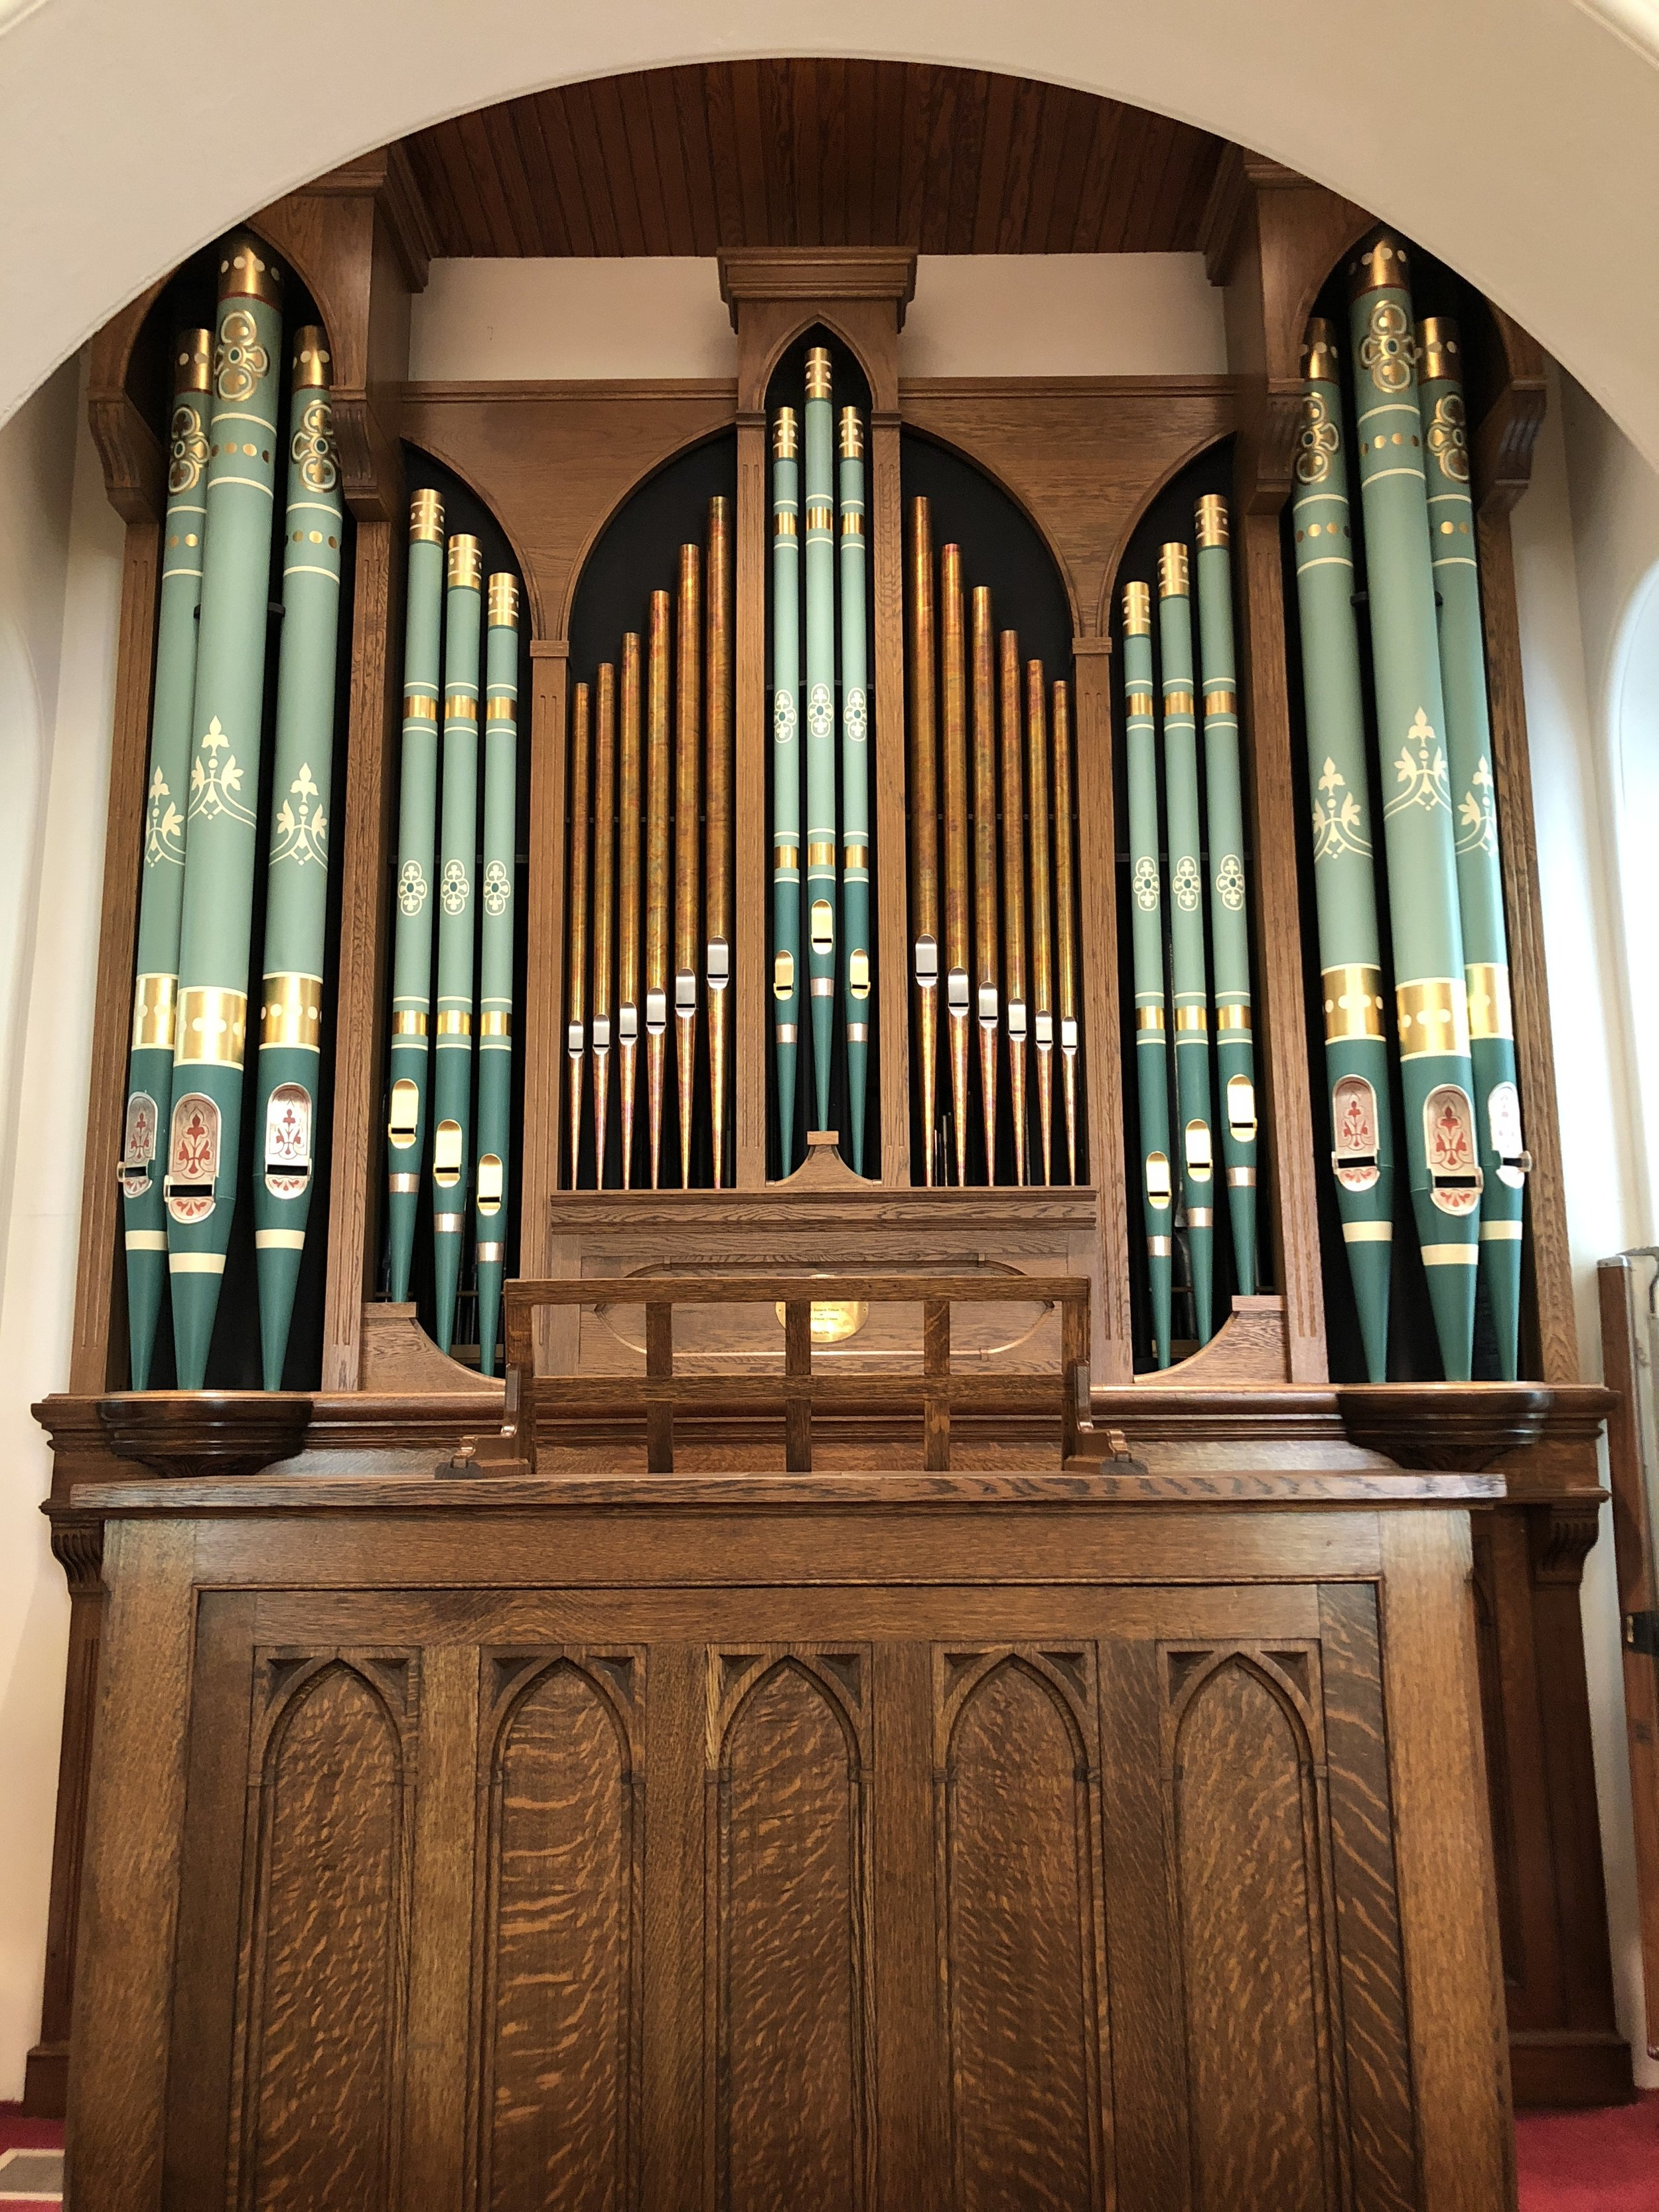 This  gorgeous  pipe organ in Little Baker Chapel. McDaniel College - Westminster, Maryland